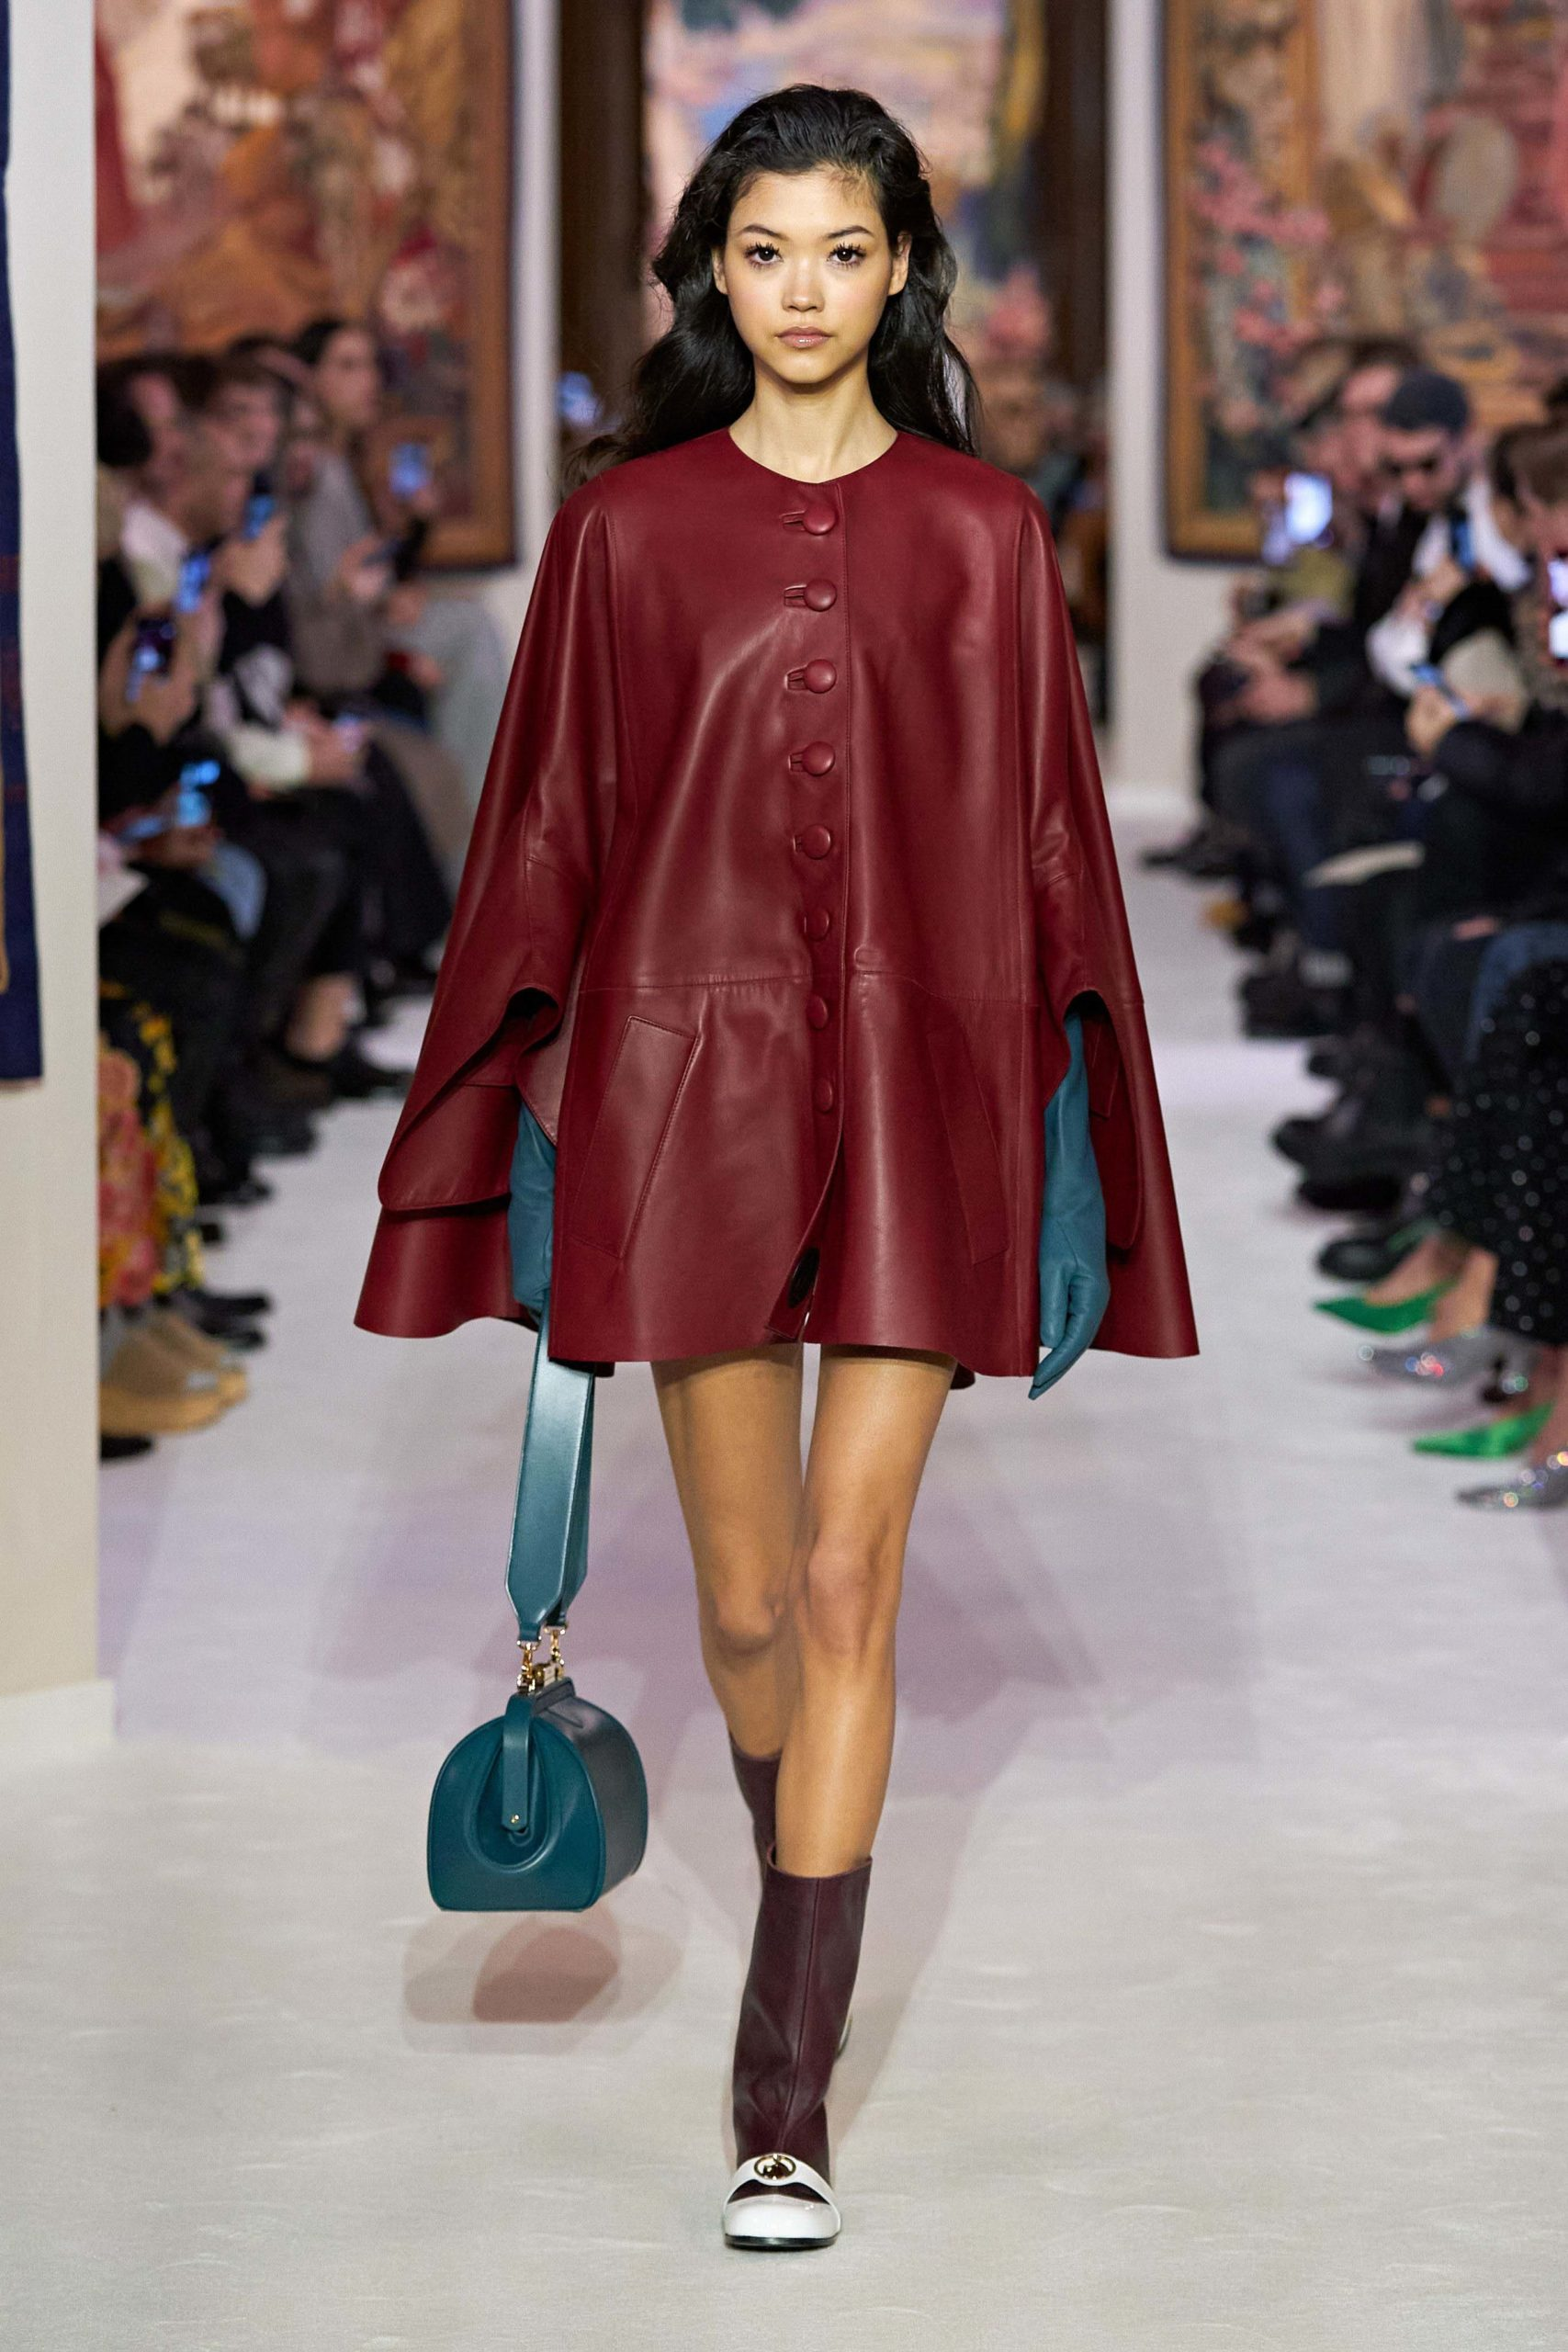 Lanvin Fall 2020 trends runway coverage Ready To Wear Vogue gloves capes with gloves eggplant